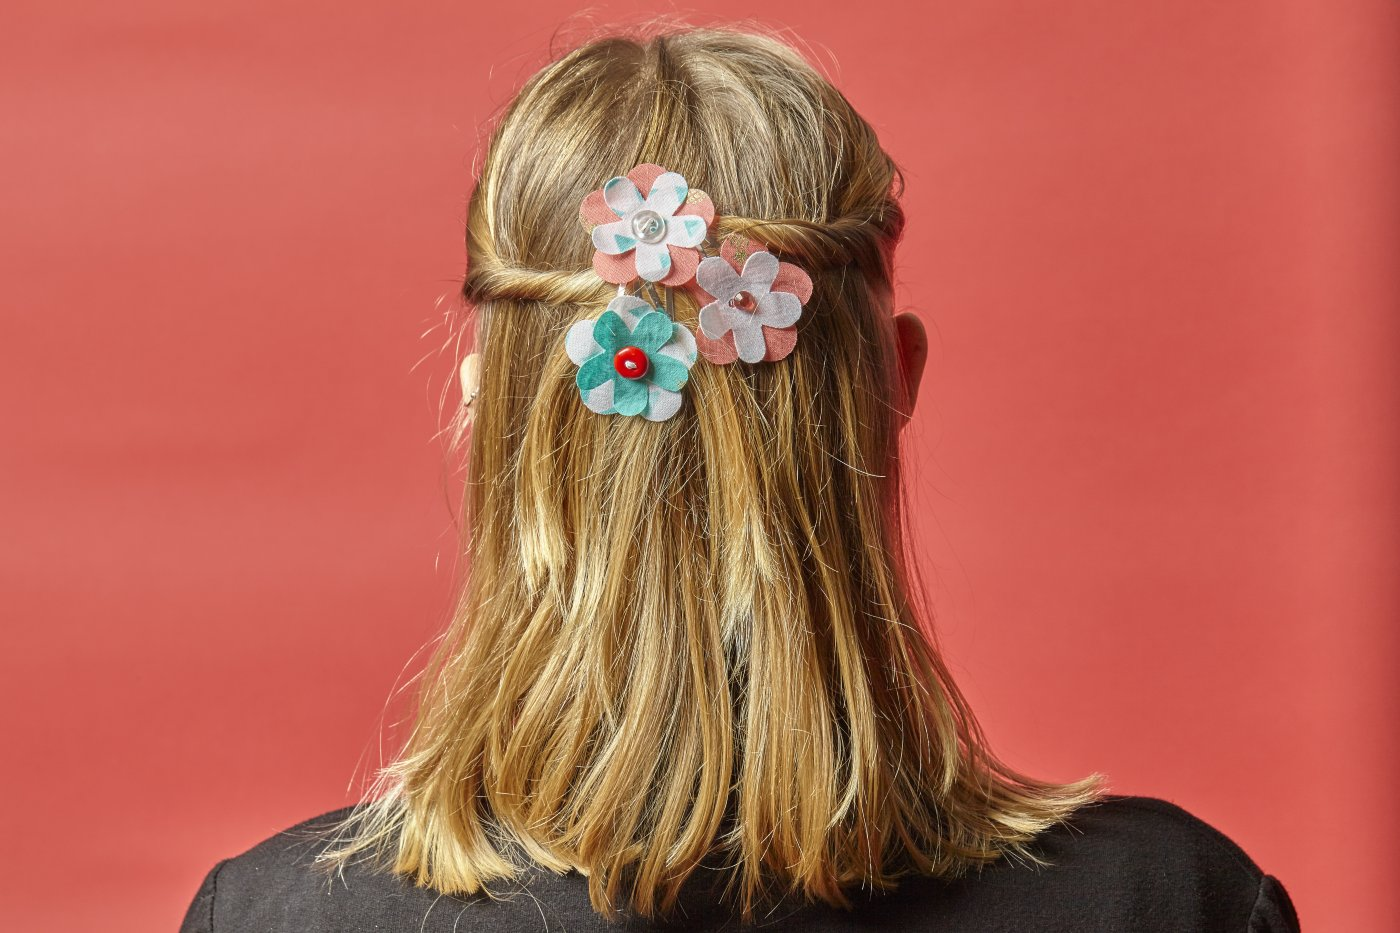 Beautiful Fabric Flowers For Your Hair